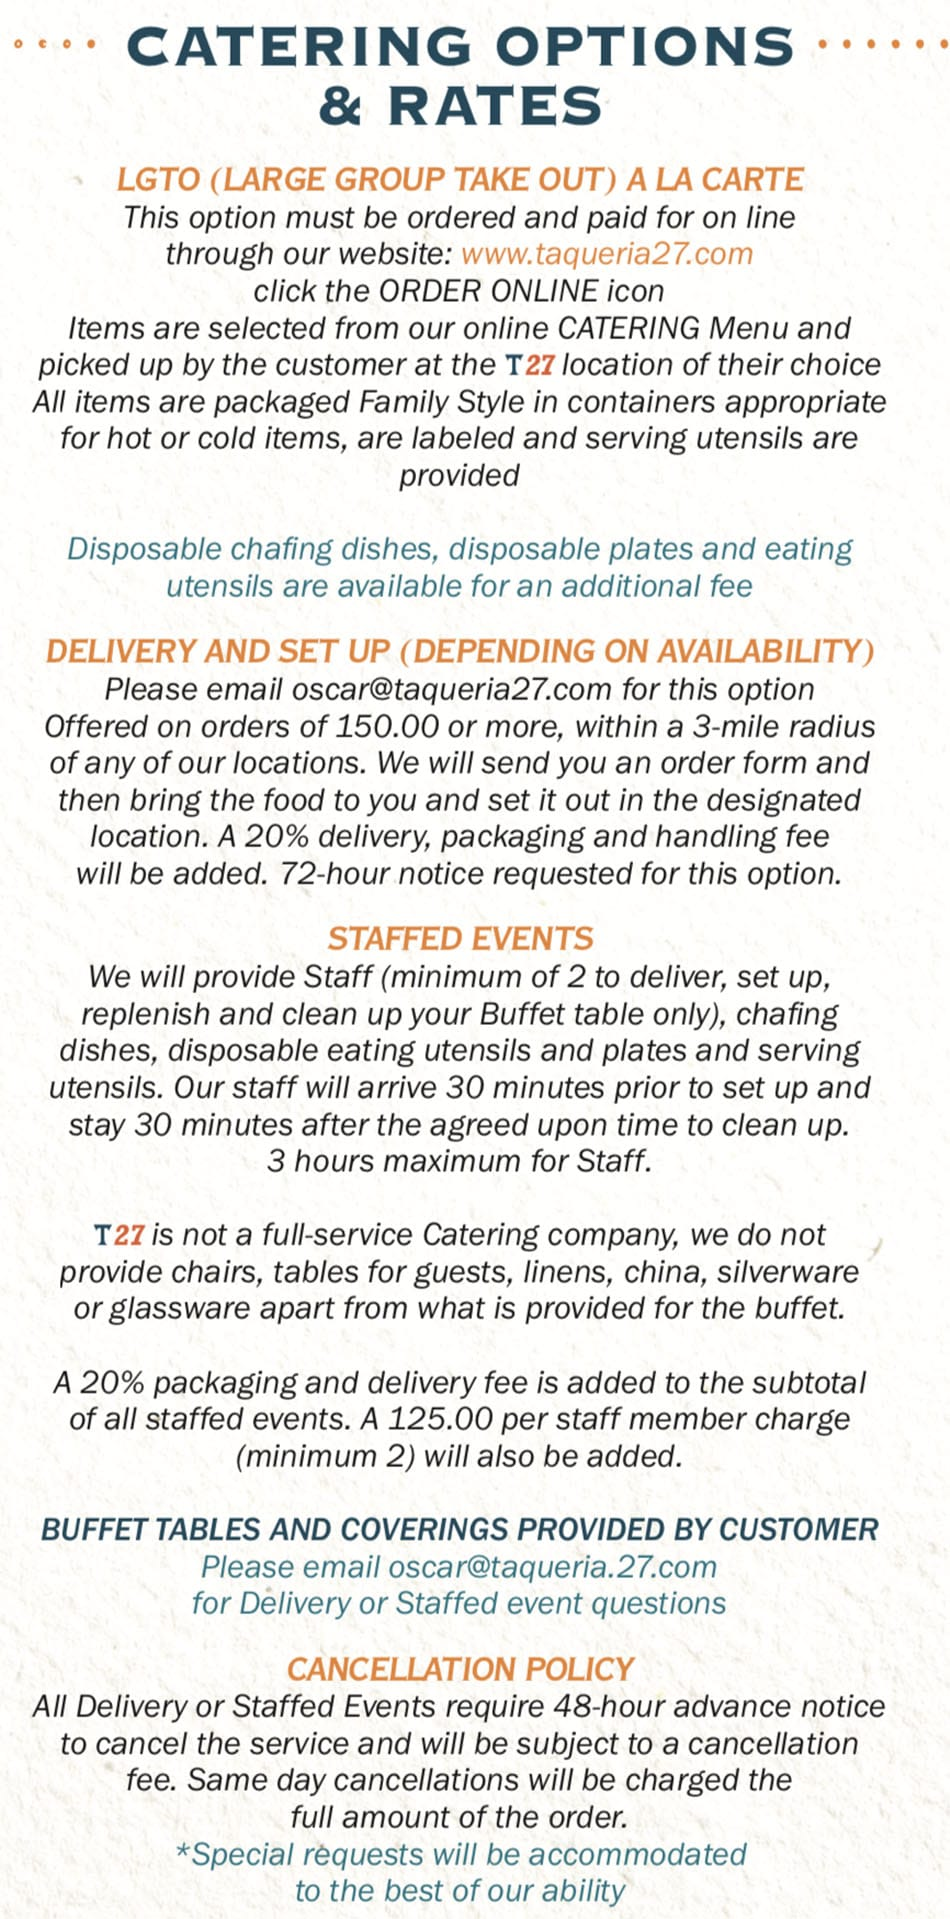 Taqueria 27 menu - catering options